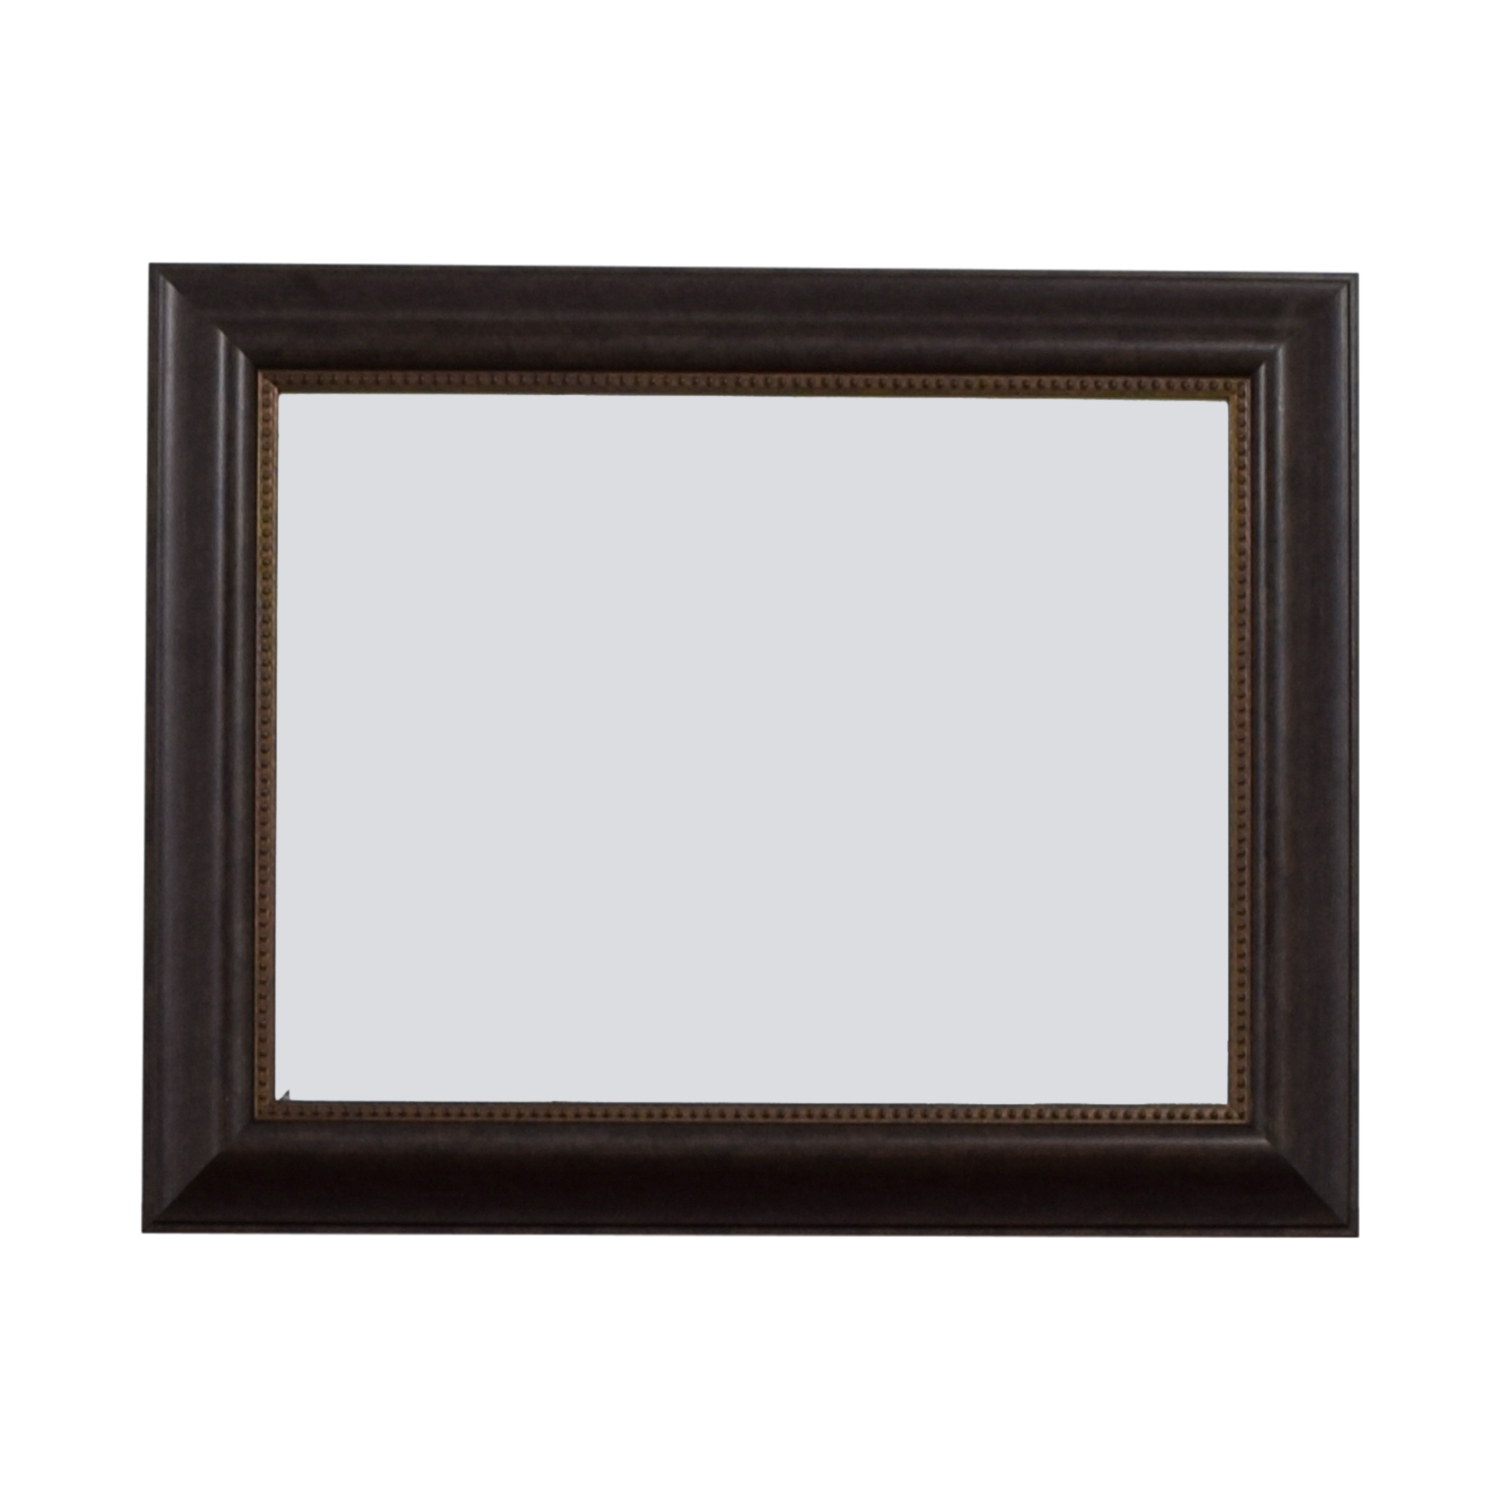 Wood Framed Mirror second hand